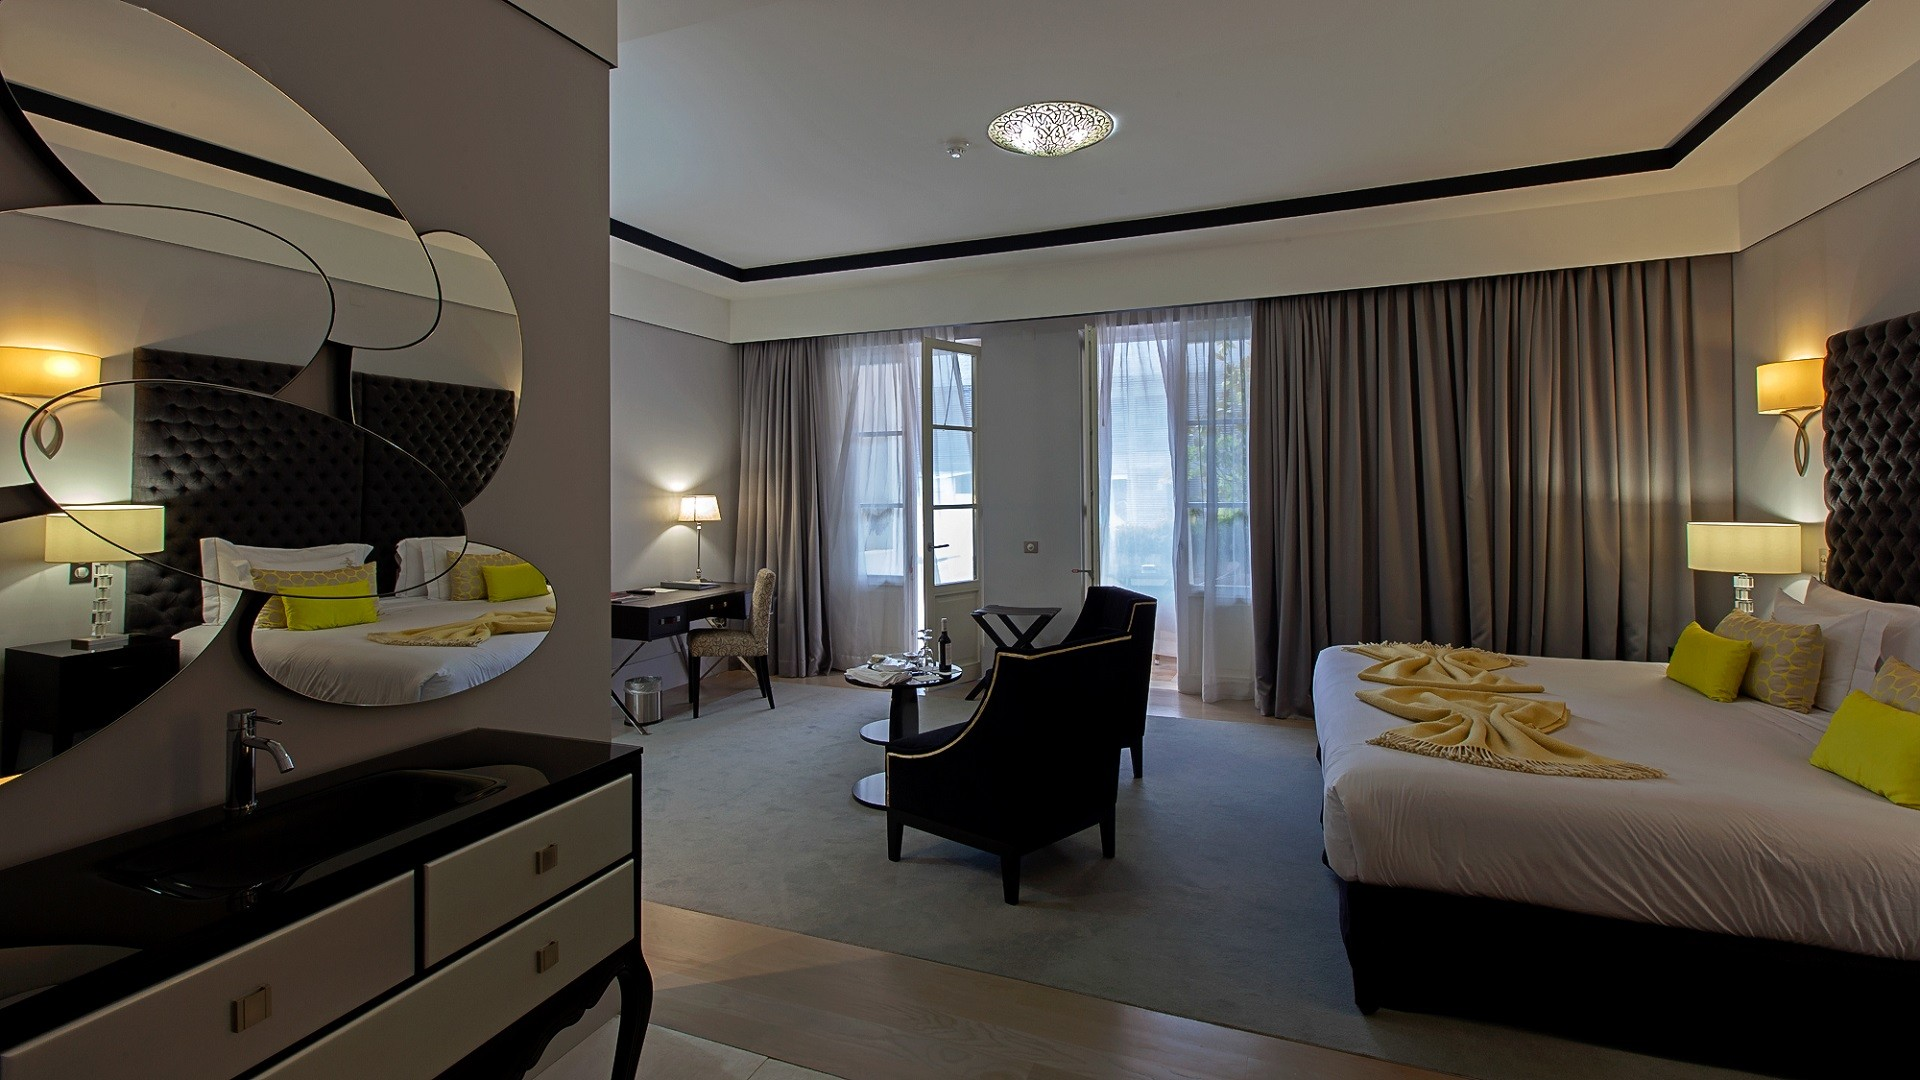 The Best Portuguese Hotels in the South Of Portugal: Alentejo Marmòris Hotel & Spa the best portuguese hotels The Best Portuguese Hotels in the South Of Portugal The Best Portuguese Hotels in the South Of Portugal 5